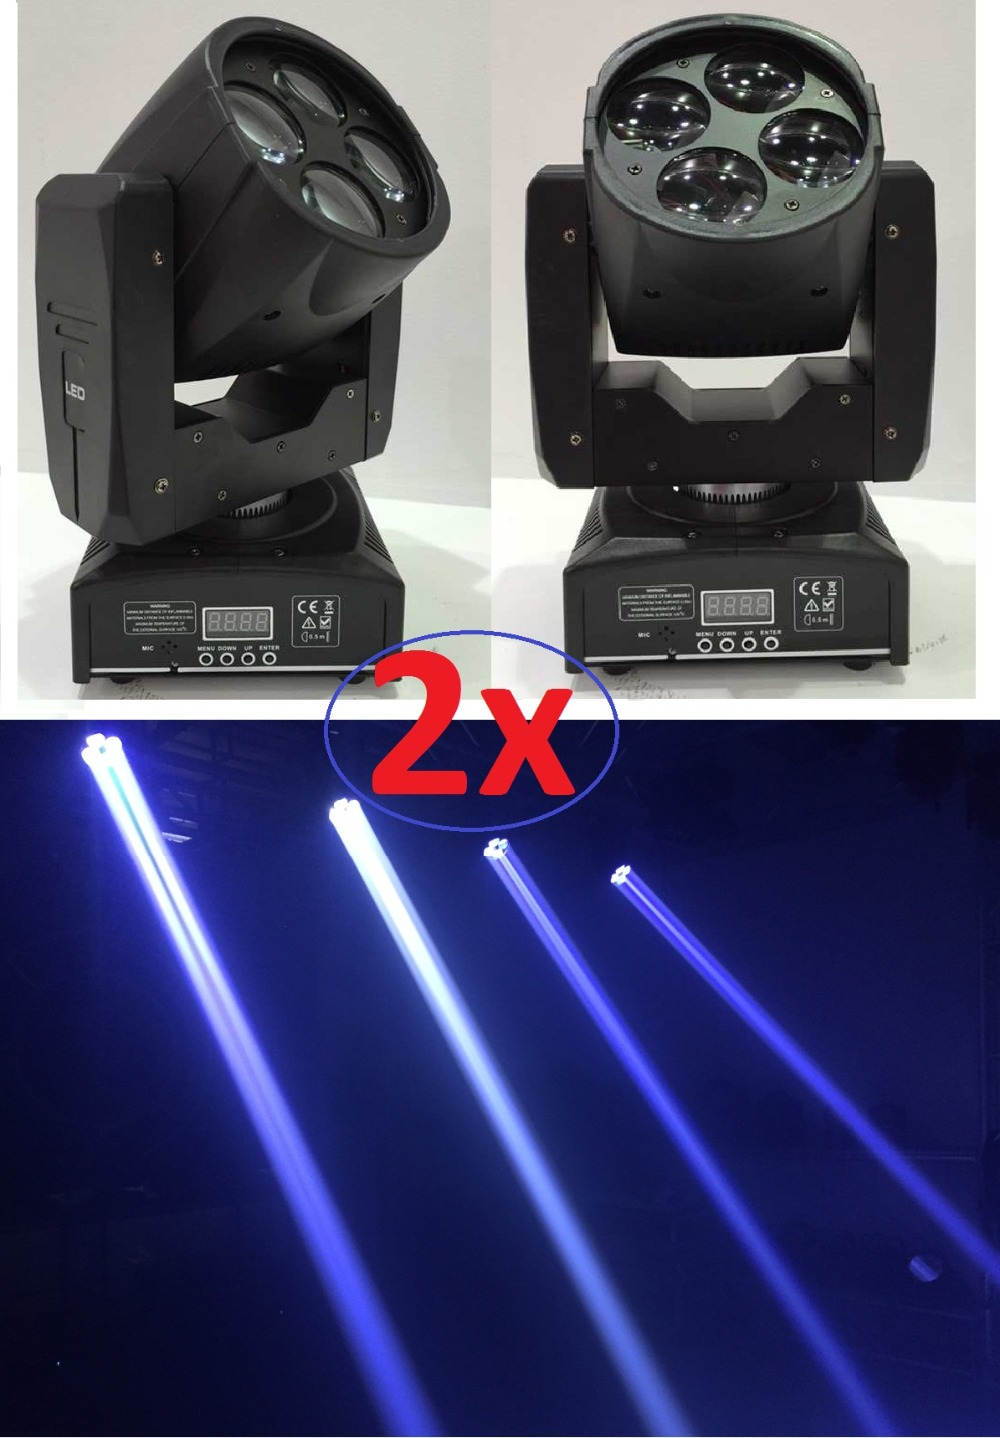 2xLot CREE 60W Led Moving Head Spot Effect Light 4x15W Suprt Beam Wash Mini Lighting DJ KTV Disco Stage Lights RGBW White Colors